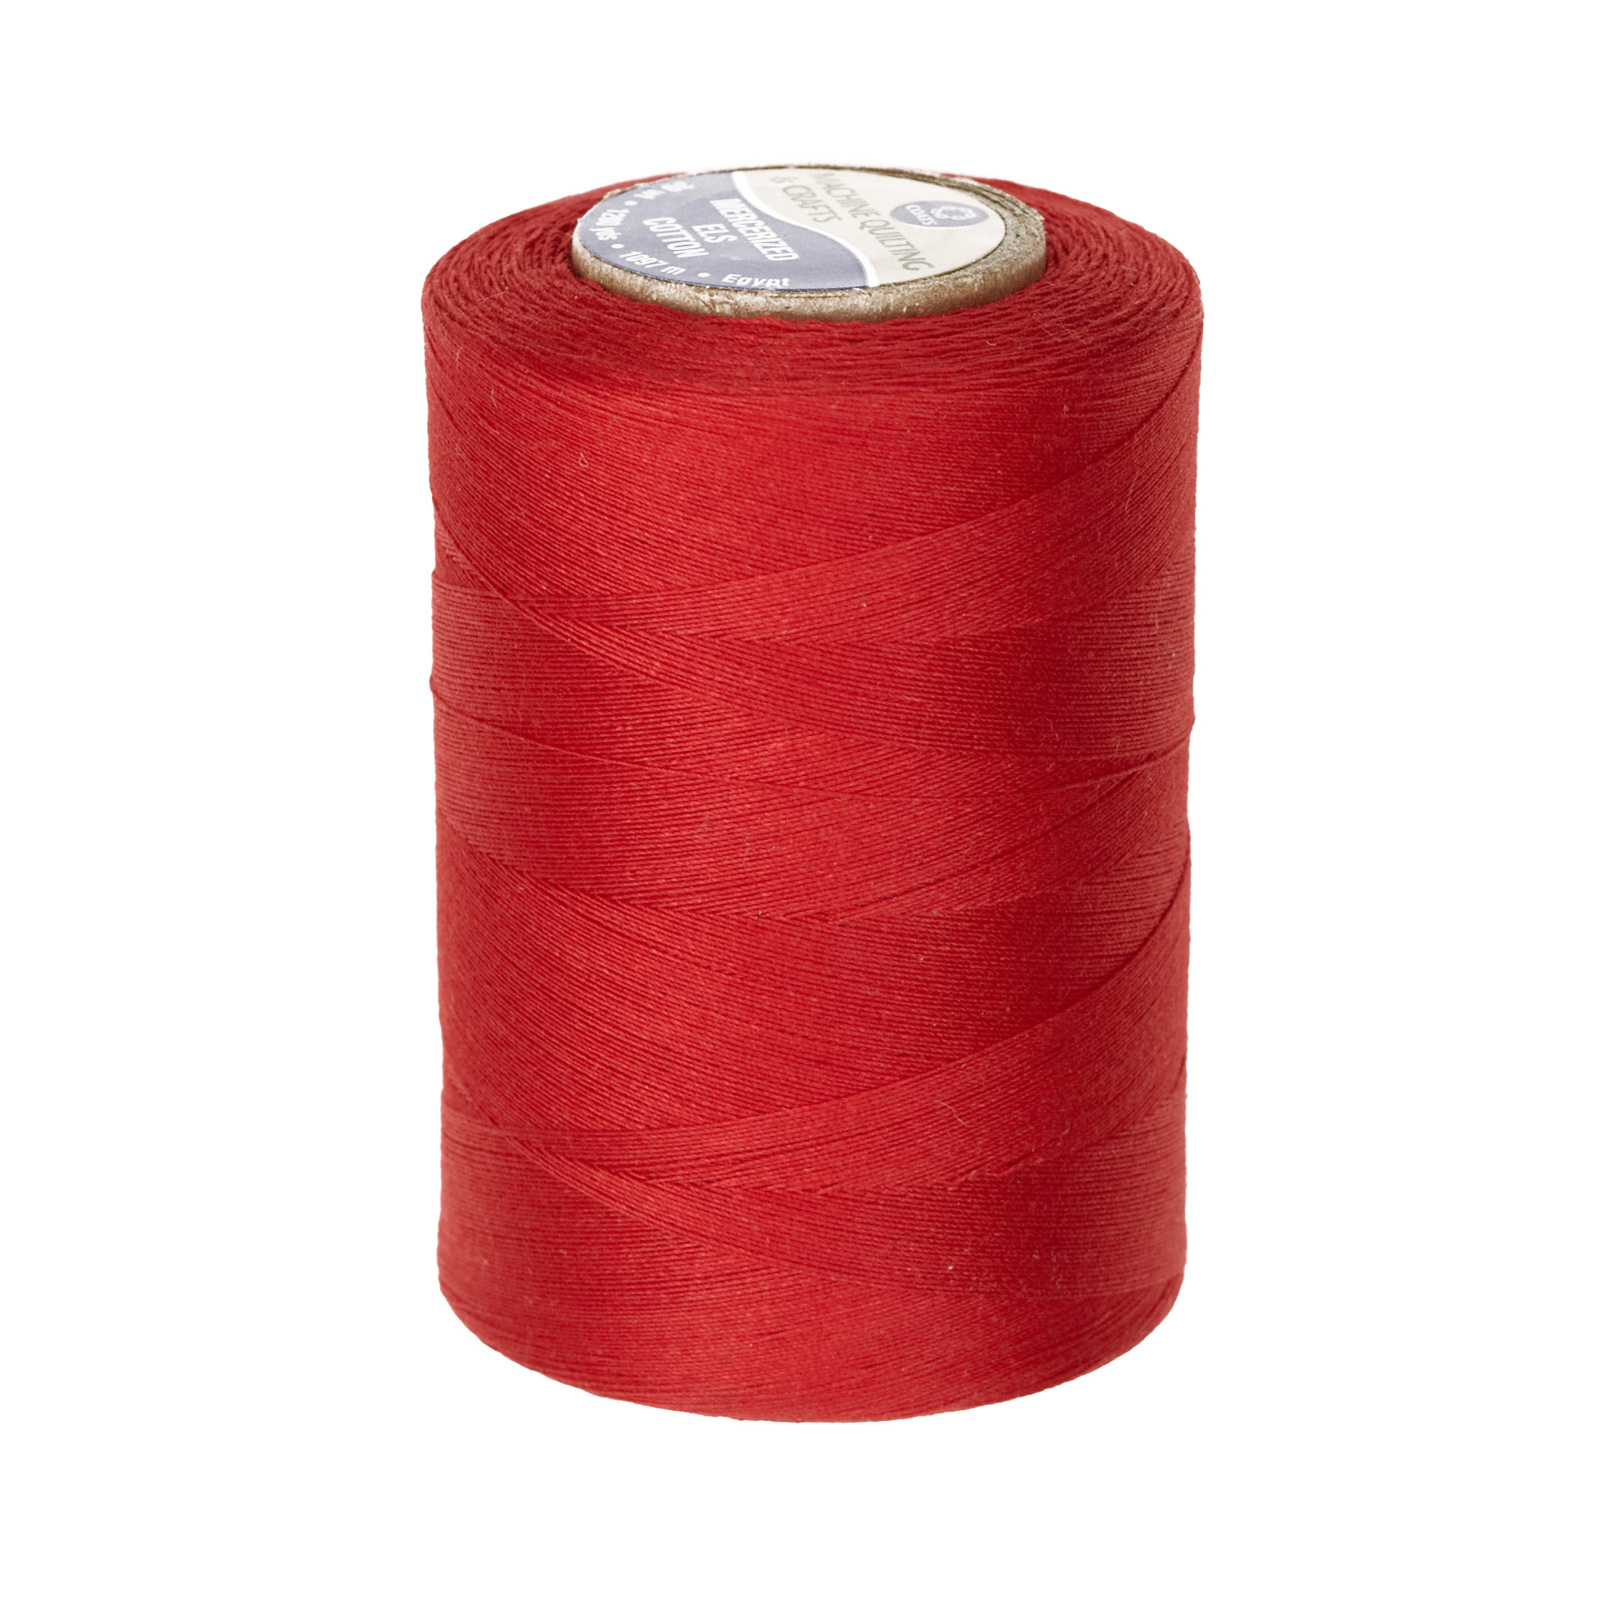 Cotton Machine Quilting Thread 1200 YD Red by Coats & Clark in USA